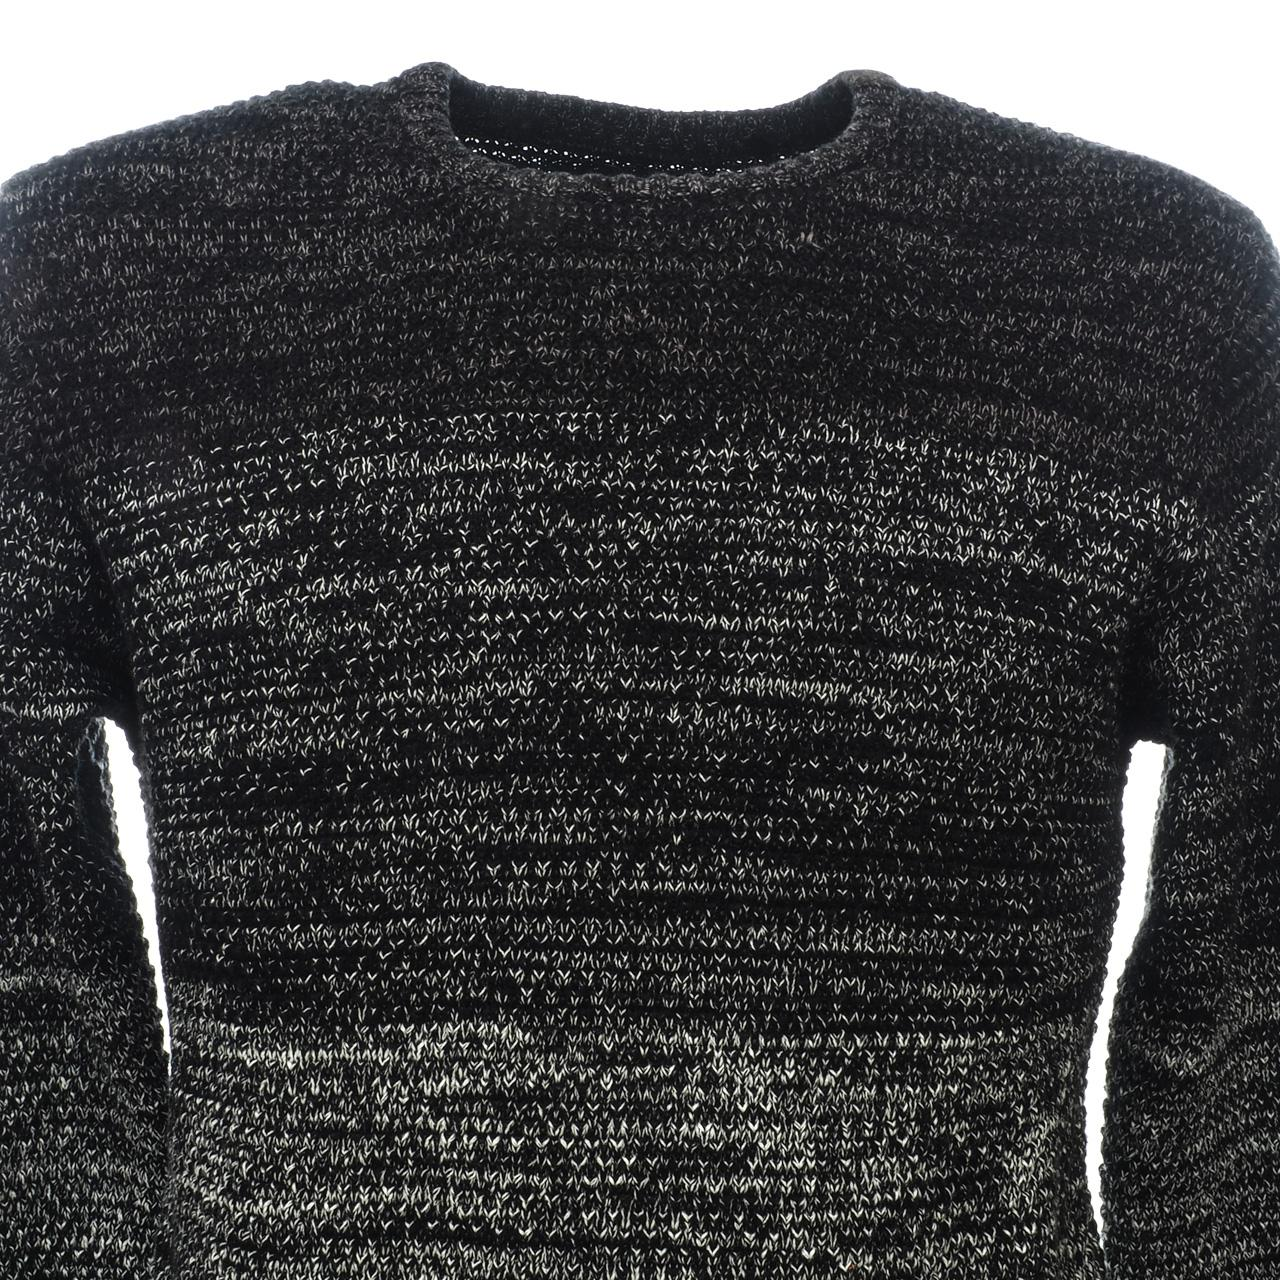 Sweater-RMS-26-Alfred-Black-Black-Sweater-15826-New thumbnail 2